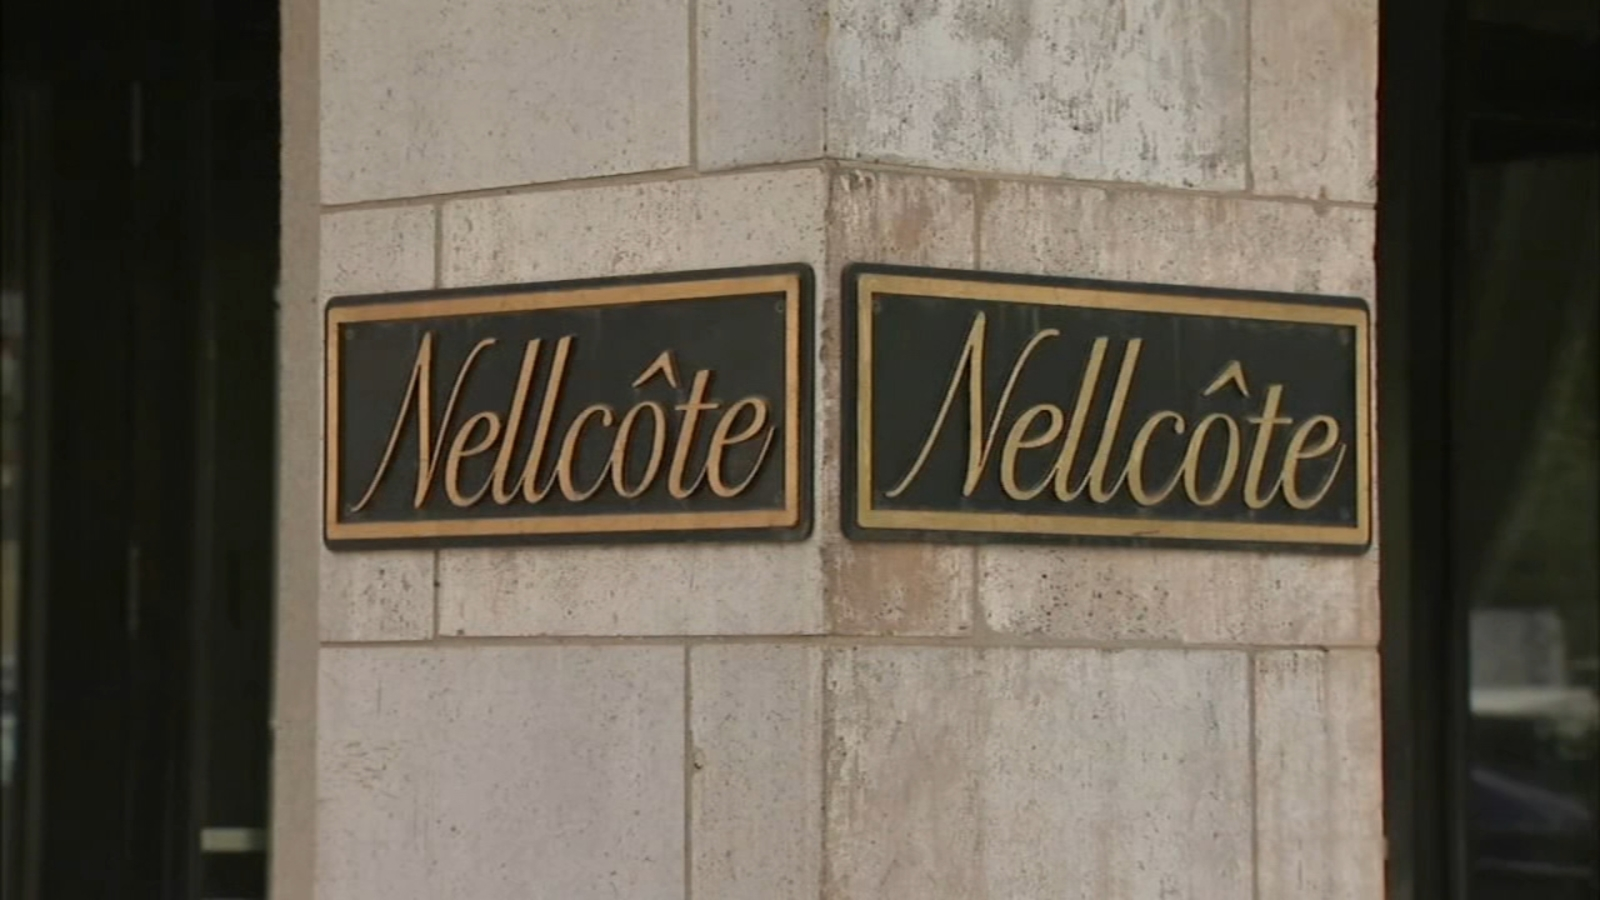 Nellcote closes abruptly, leaving couples scrambling for new wedding venues